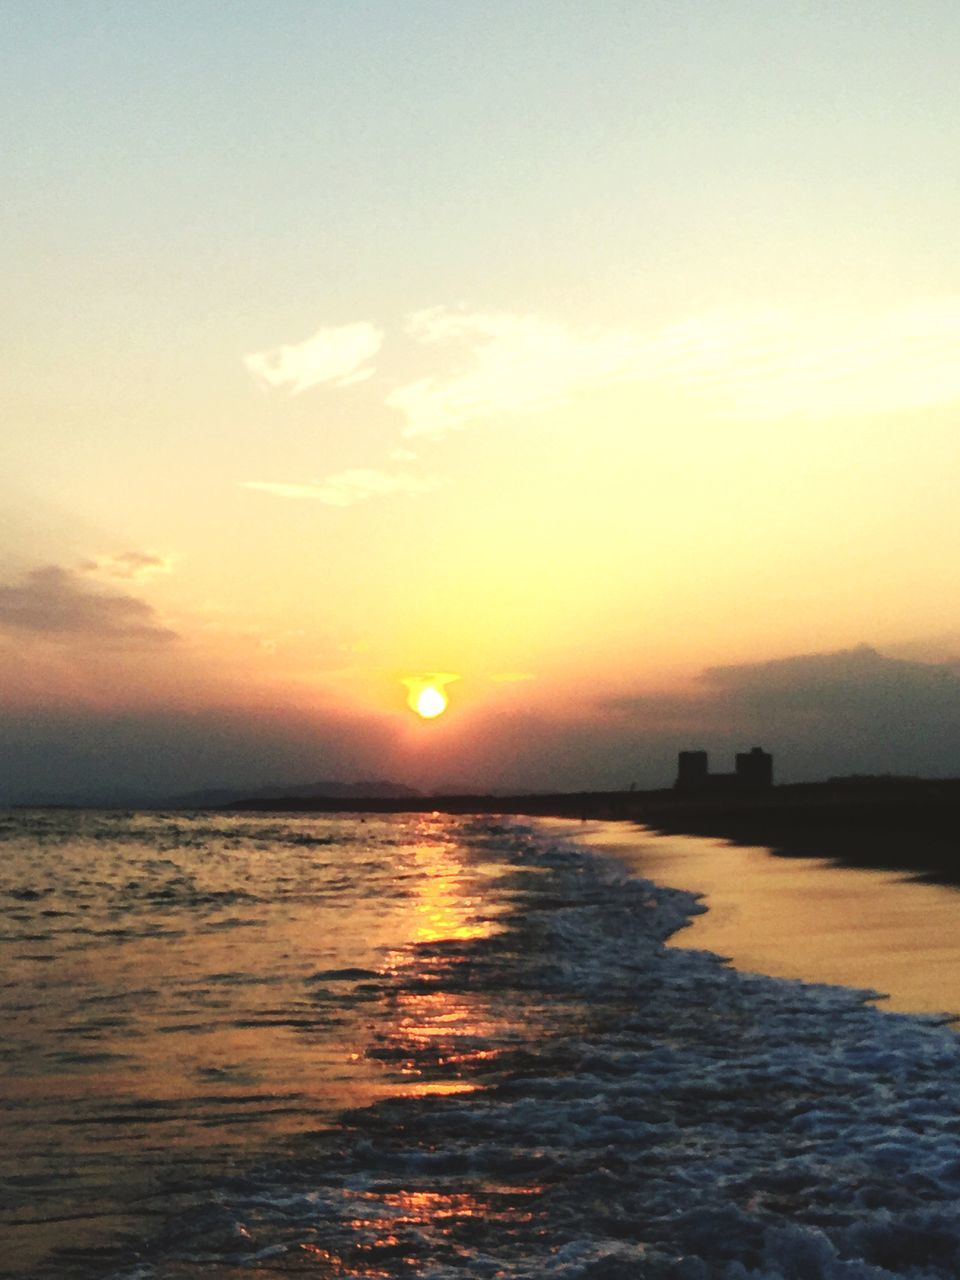 sunset, scenics, water, tranquil scene, sea, sun, tranquility, beauty in nature, waterfront, sky, orange color, idyllic, nature, calm, rippled, ocean, cloud, outdoors, majestic, seascape, non-urban scene, romantic sky, cloud - sky, wave, shore, no people, atmospheric mood, water surface, remote